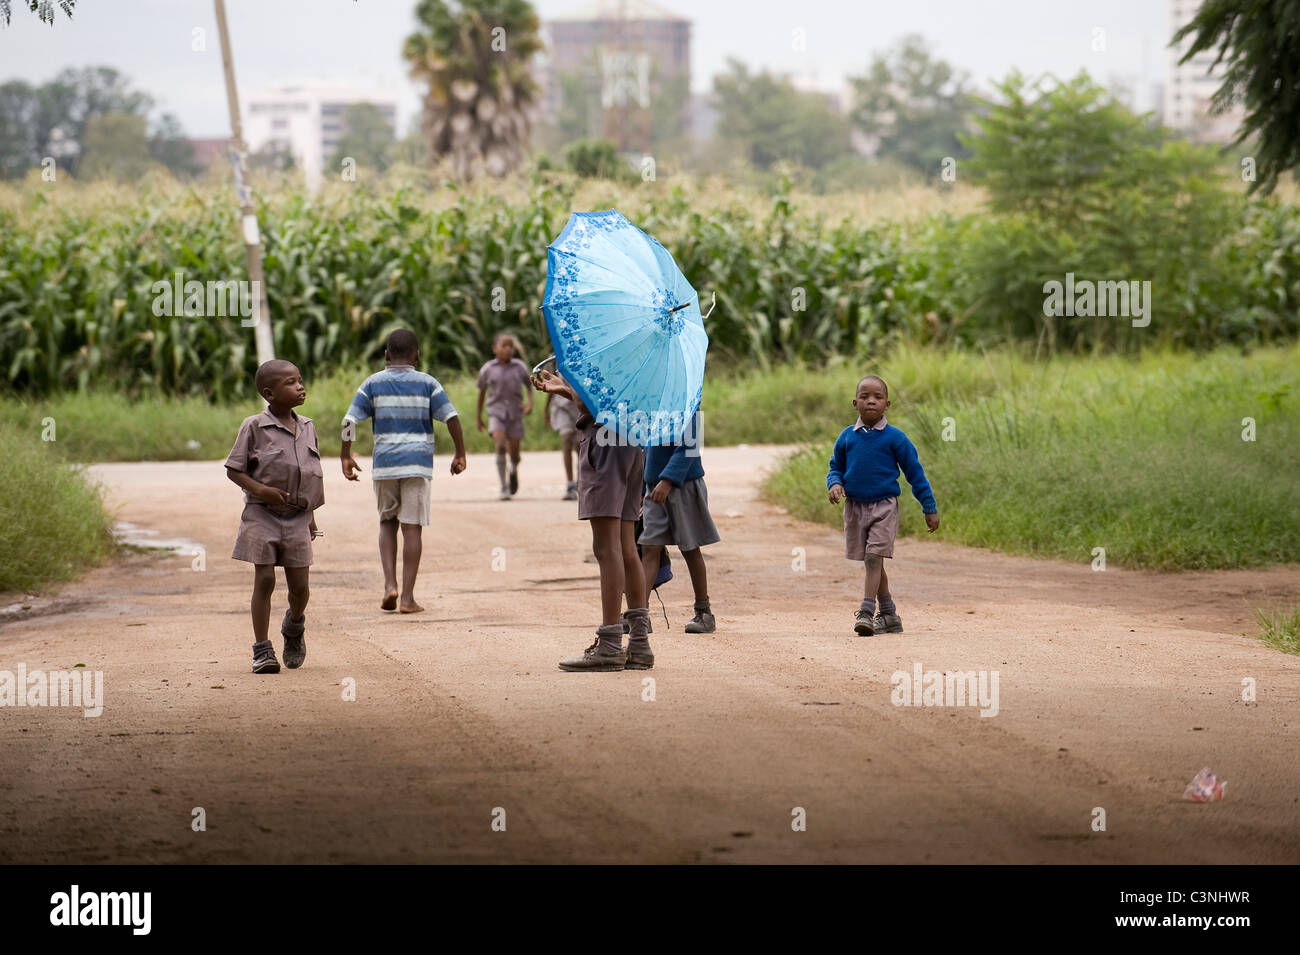 School children playing in the street on their way home from school one has an umbrella. Arcadia, Harare, Zimbabwe. - Stock Image